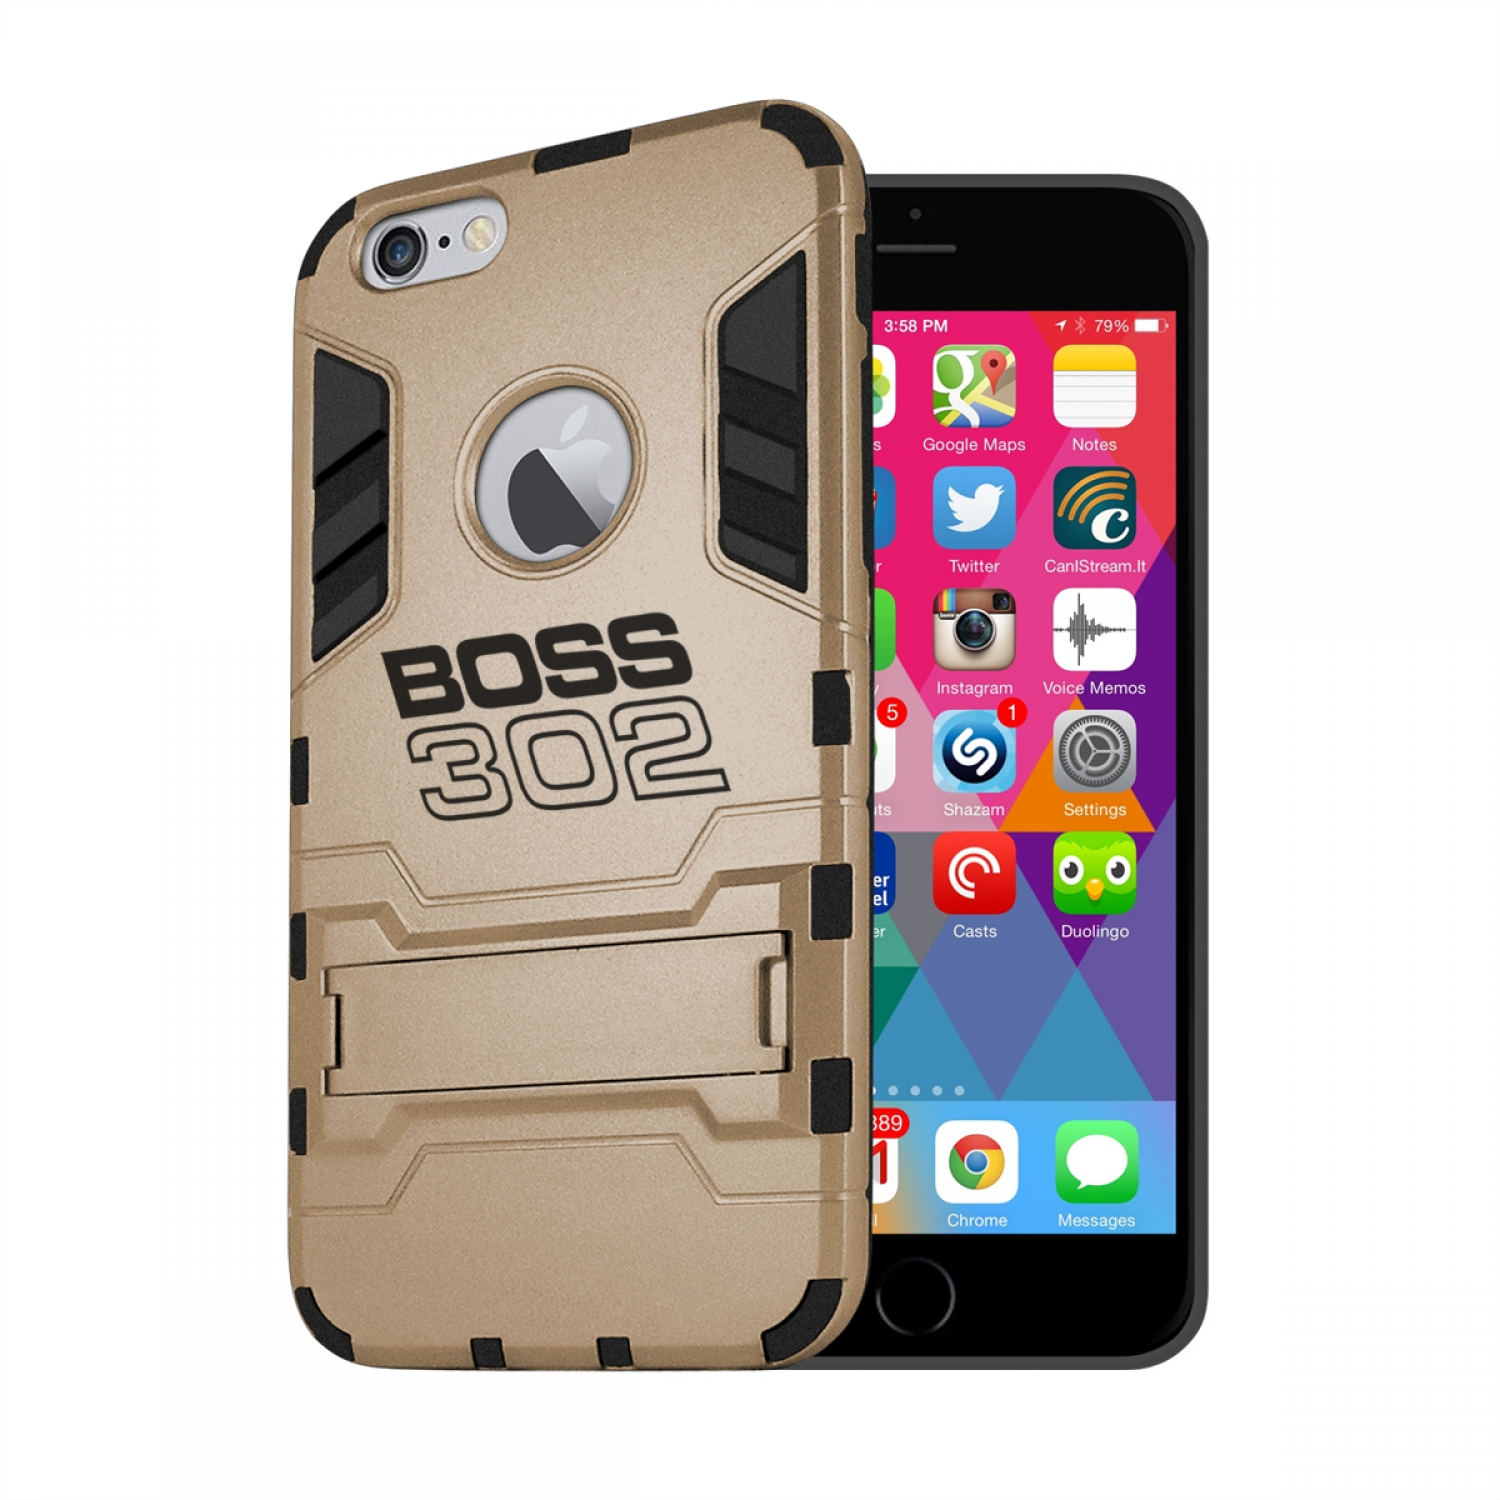 Ford Mustang Boss 302 iPhone 6 6s Shockproof TPU ABS Hybrid Golden Phone Case